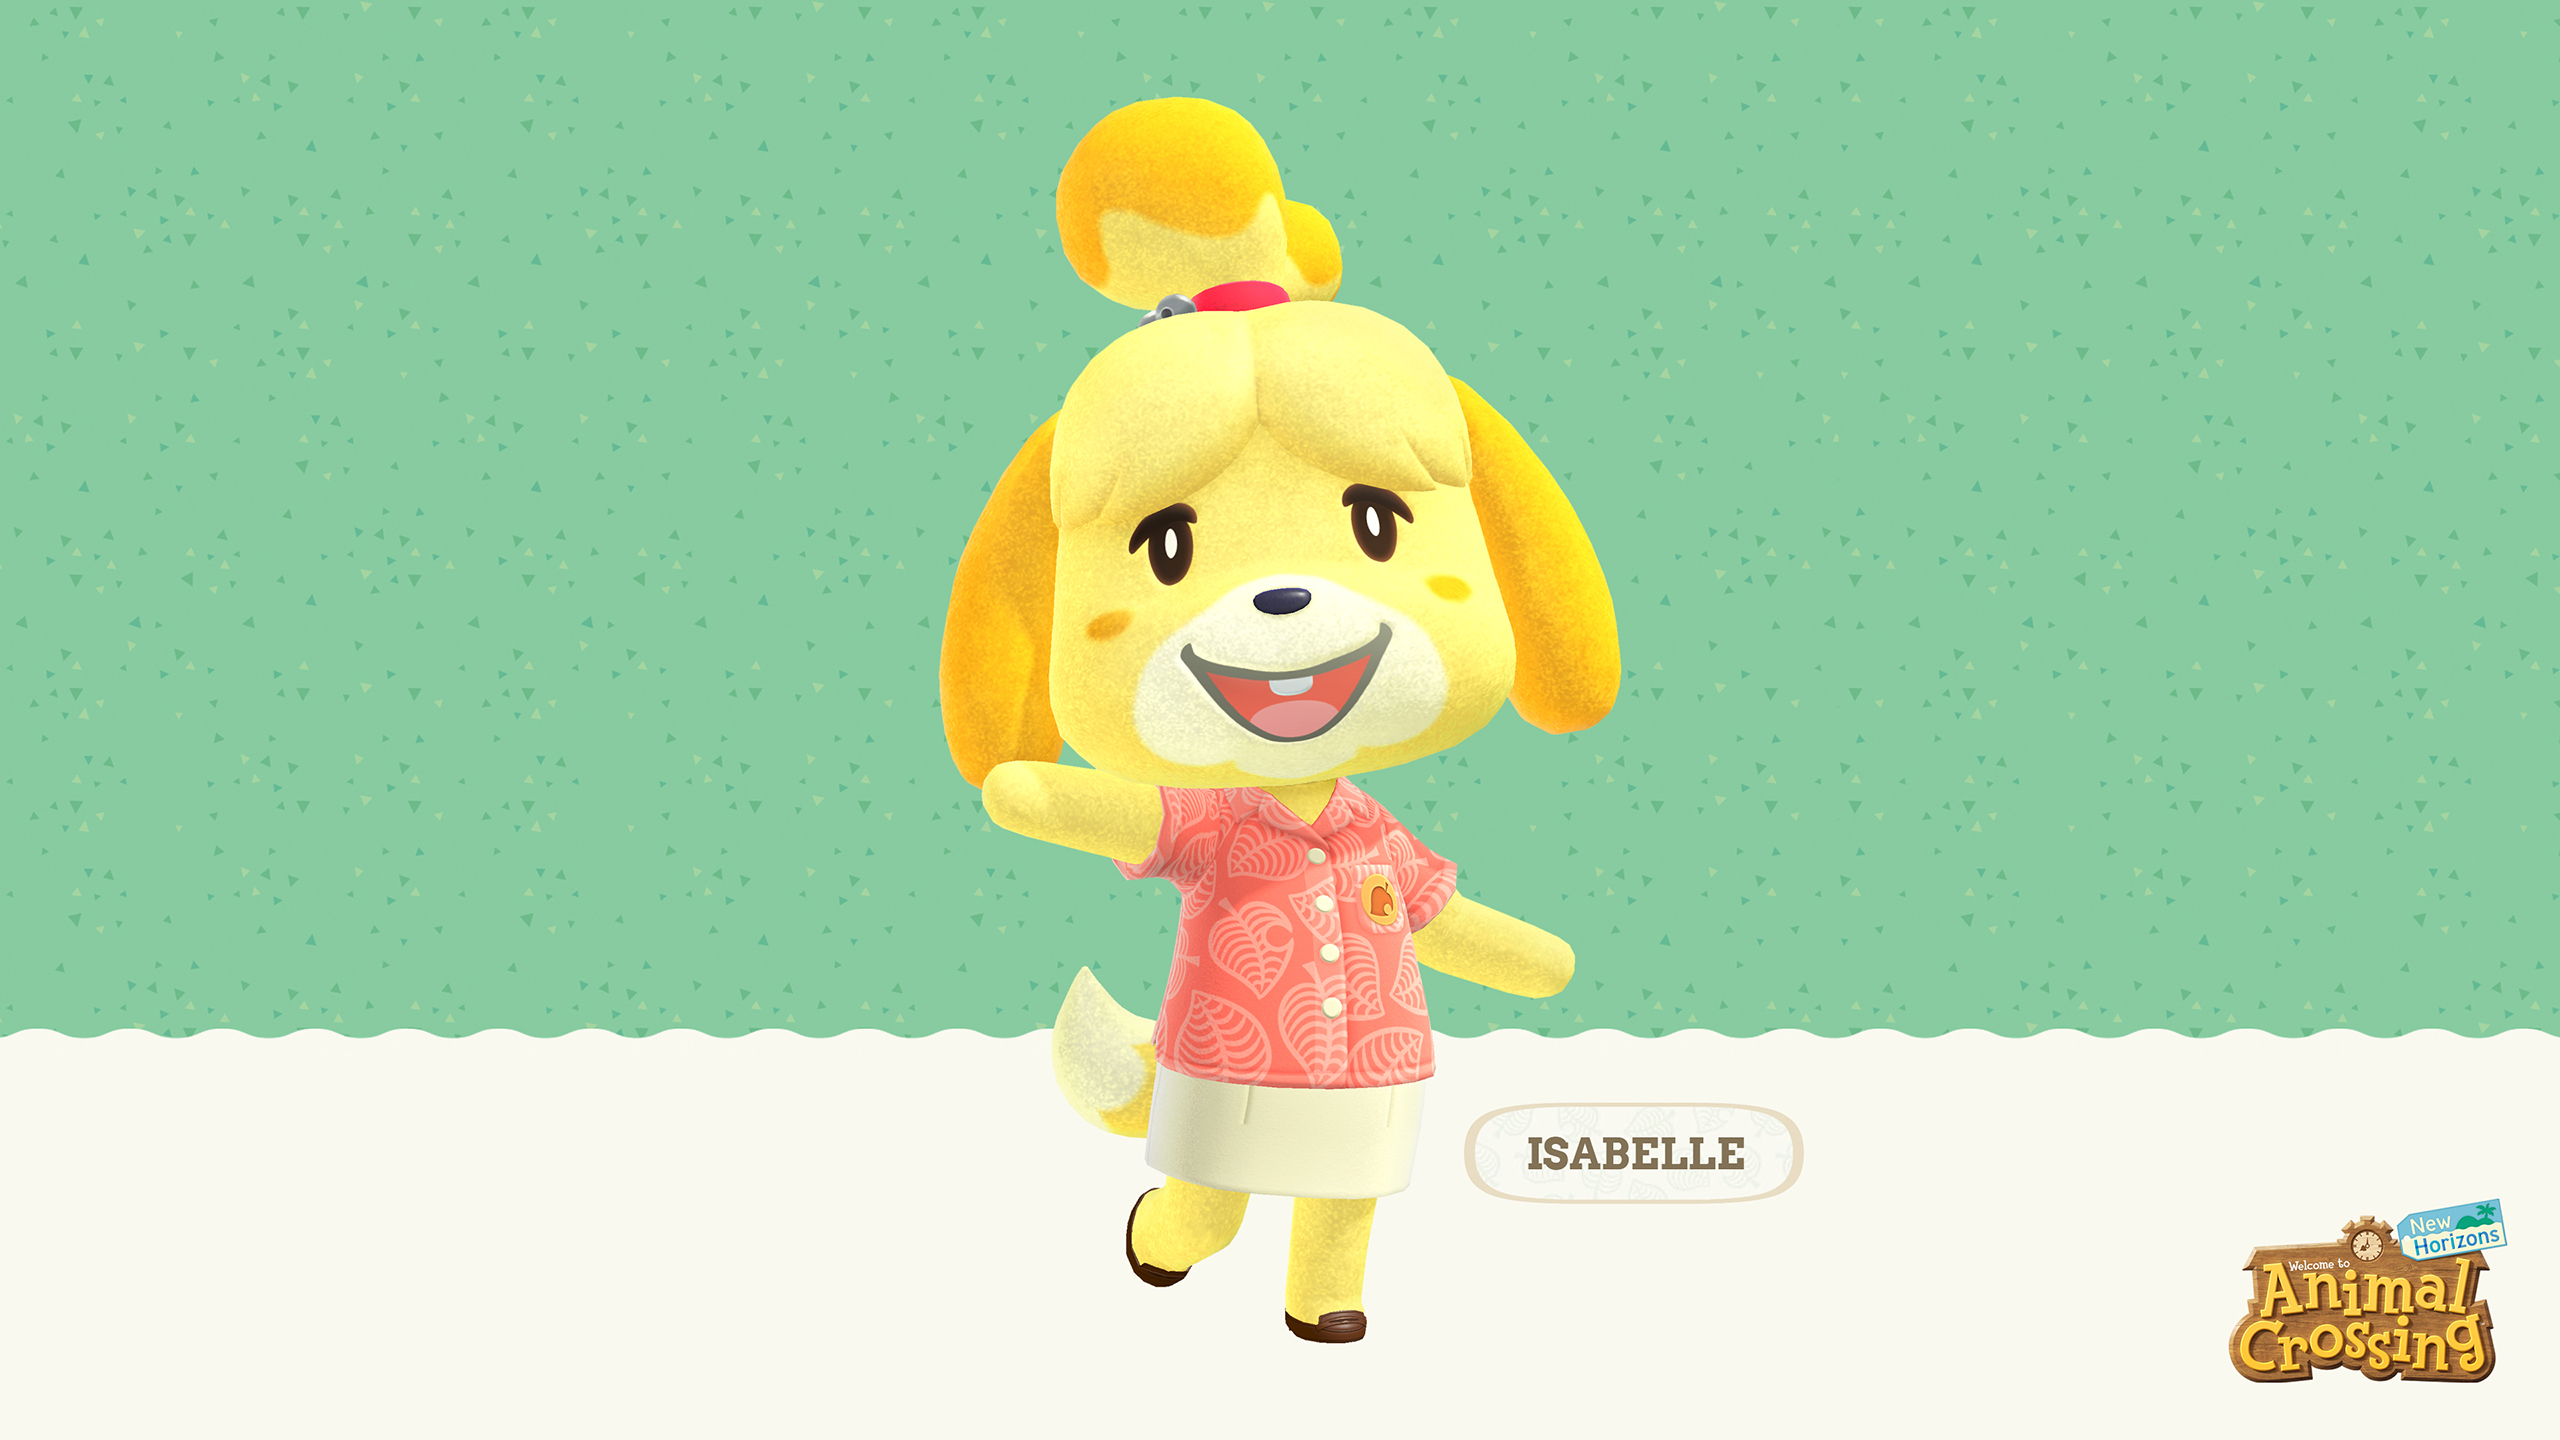 Animal Crossing New Horizons Isabelle Wallpaper Cat With Monocle